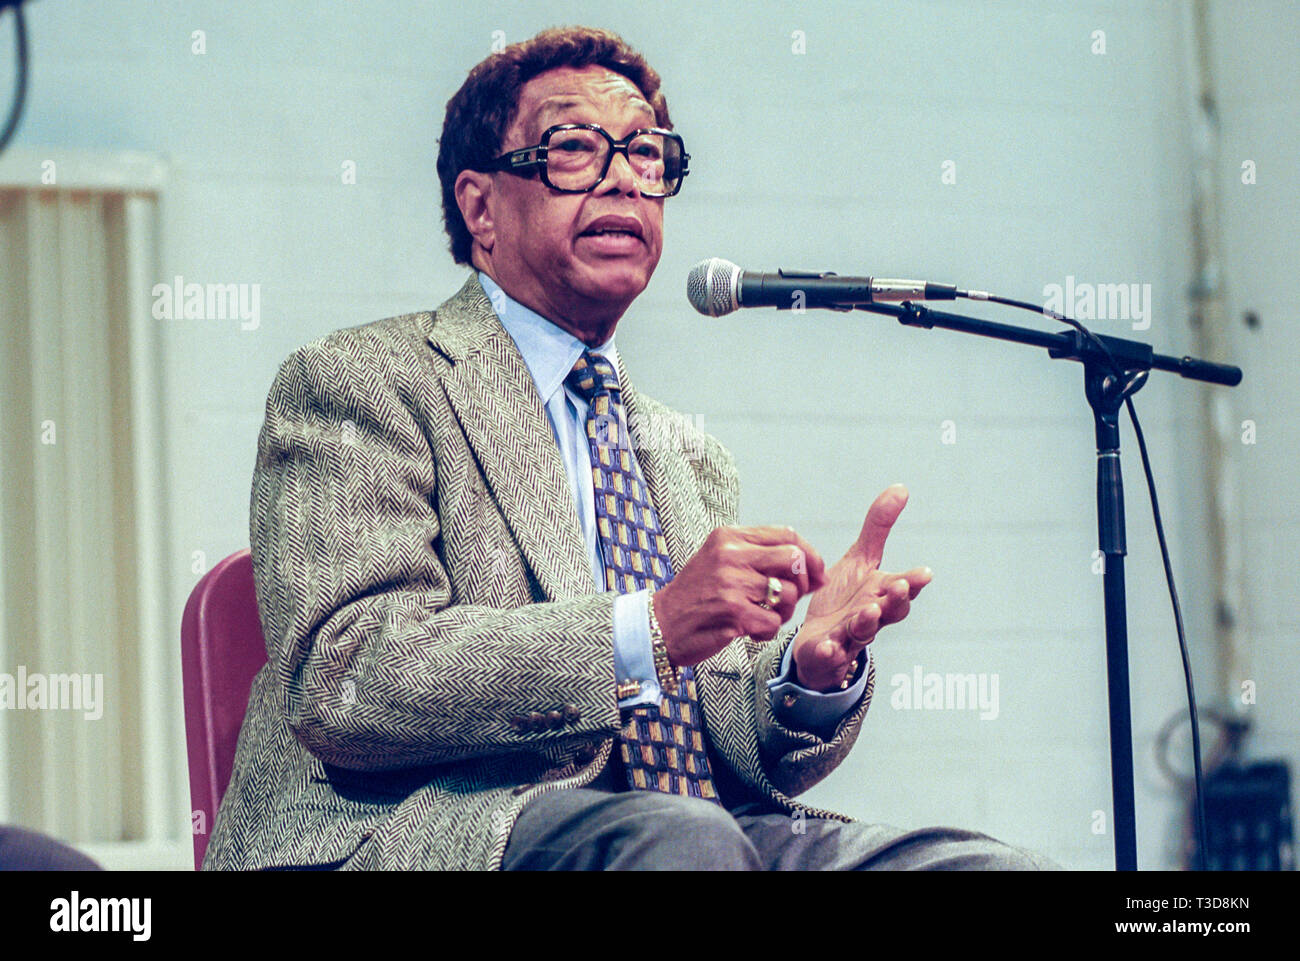 Jazz Pianist Billy Taylor teaches a music class and plays the piano. - Stock Image